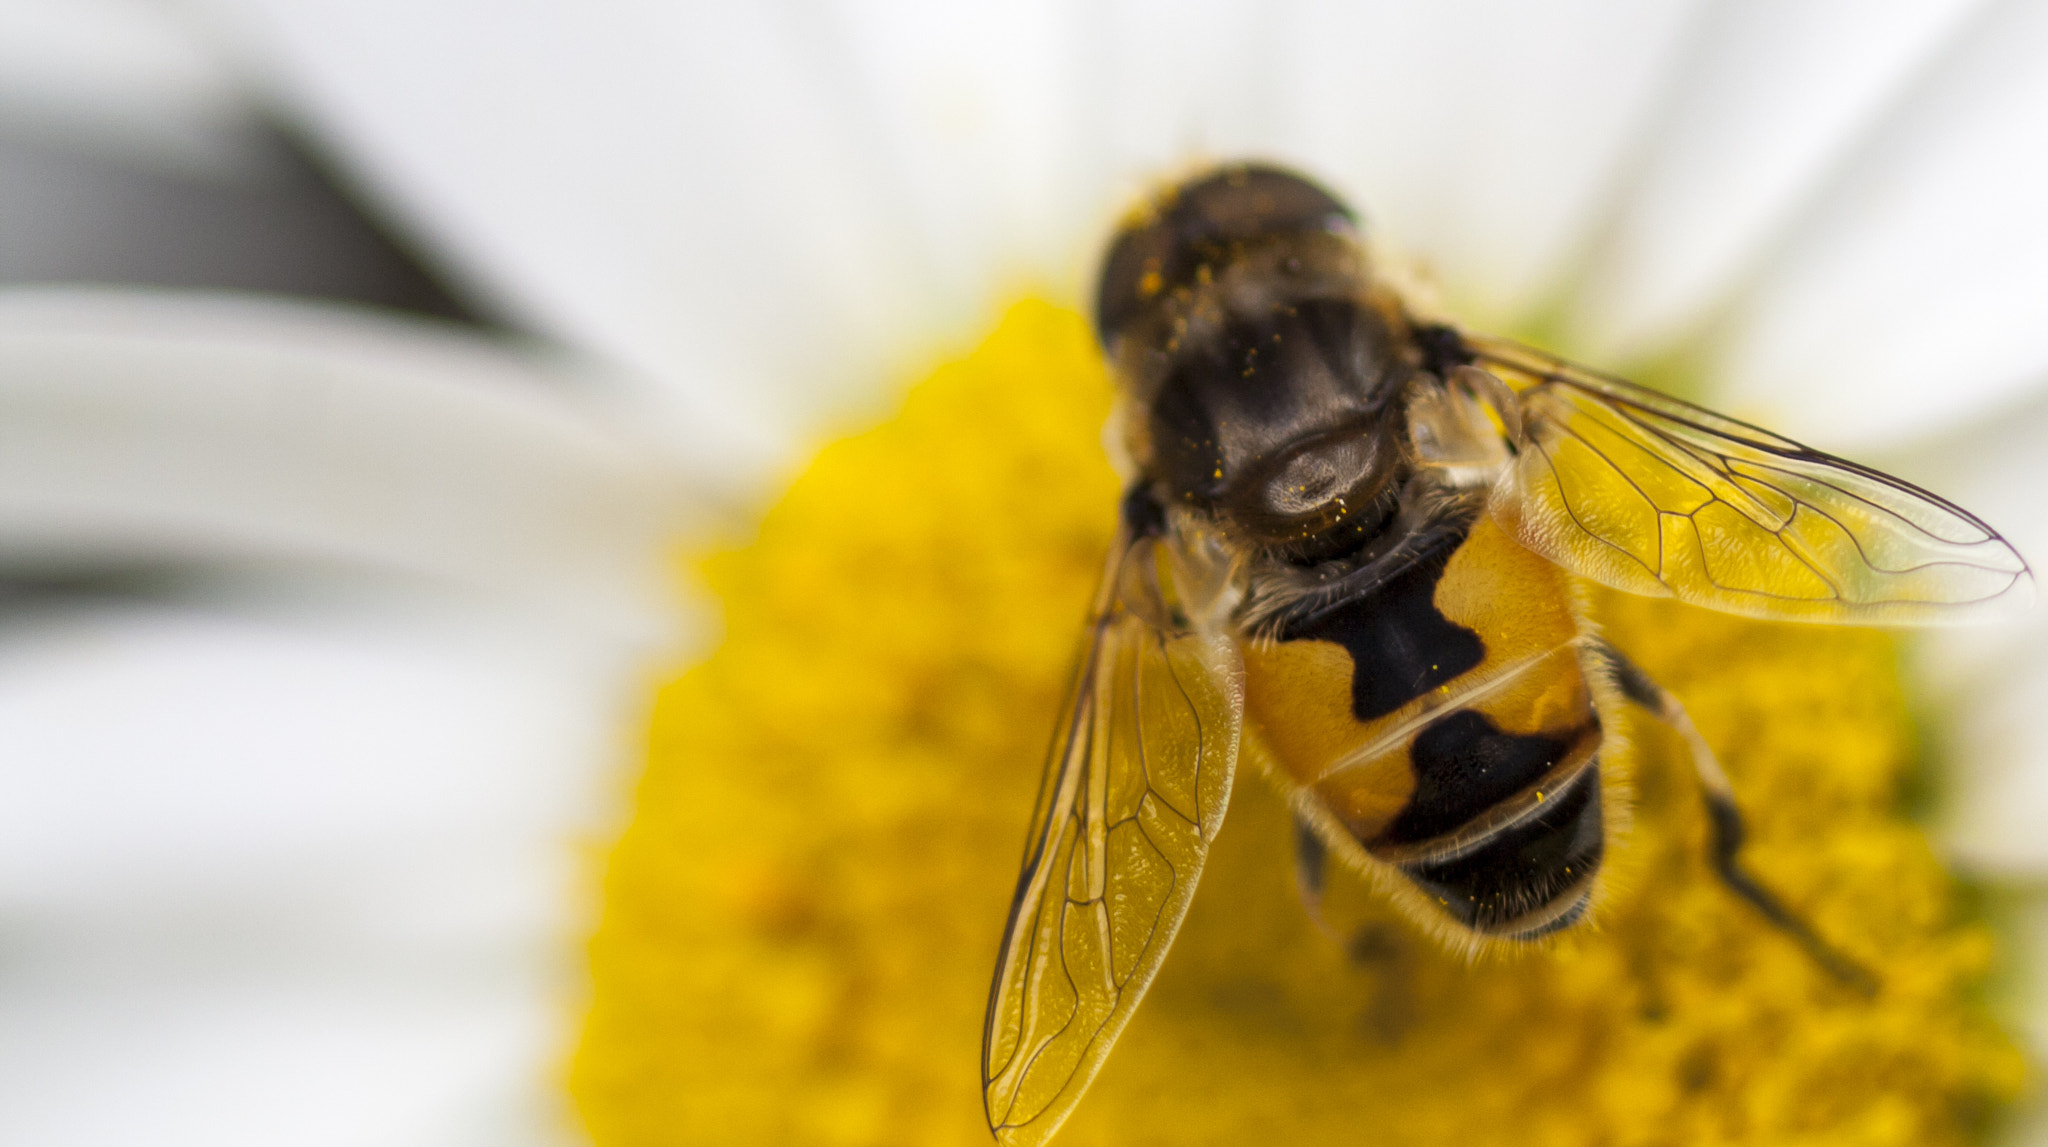 Photograph Hoverfly by Julie Jamieson on 500px